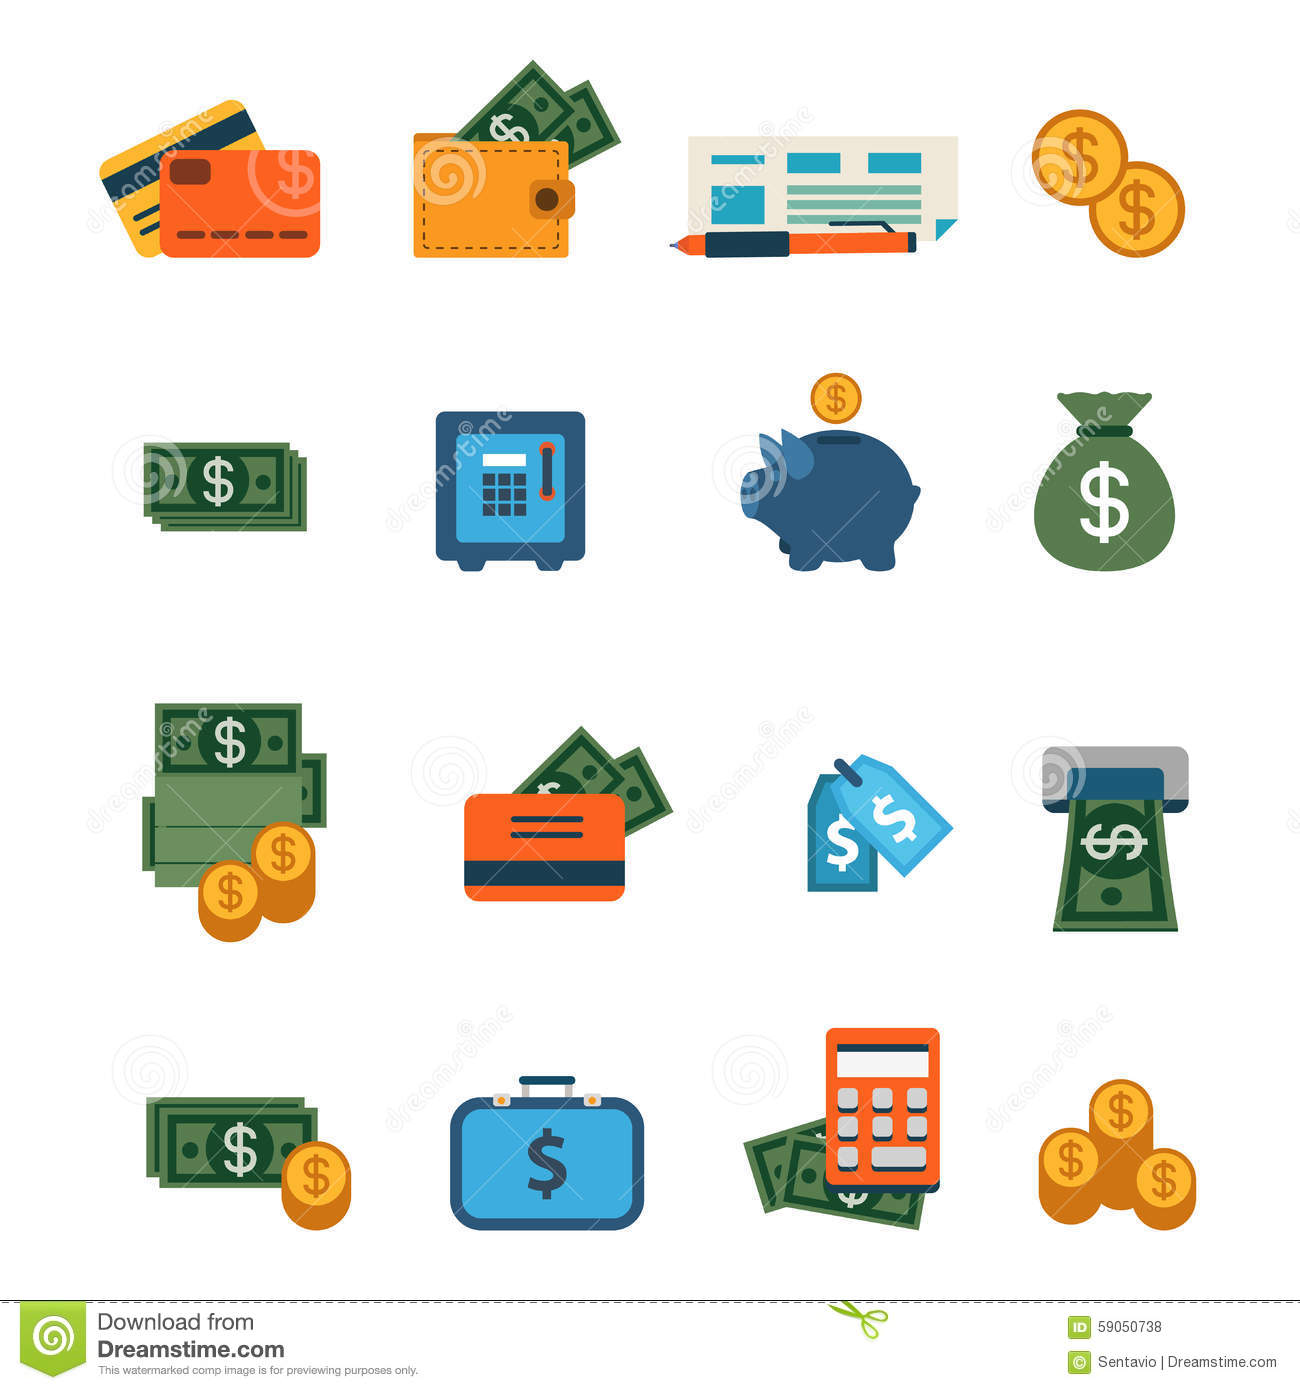 No Credit Check Credit Cards >> Flat Vector Site Interface Icon: Finance, Banking, Dollar, Money Stock Vector - Image: 59050738